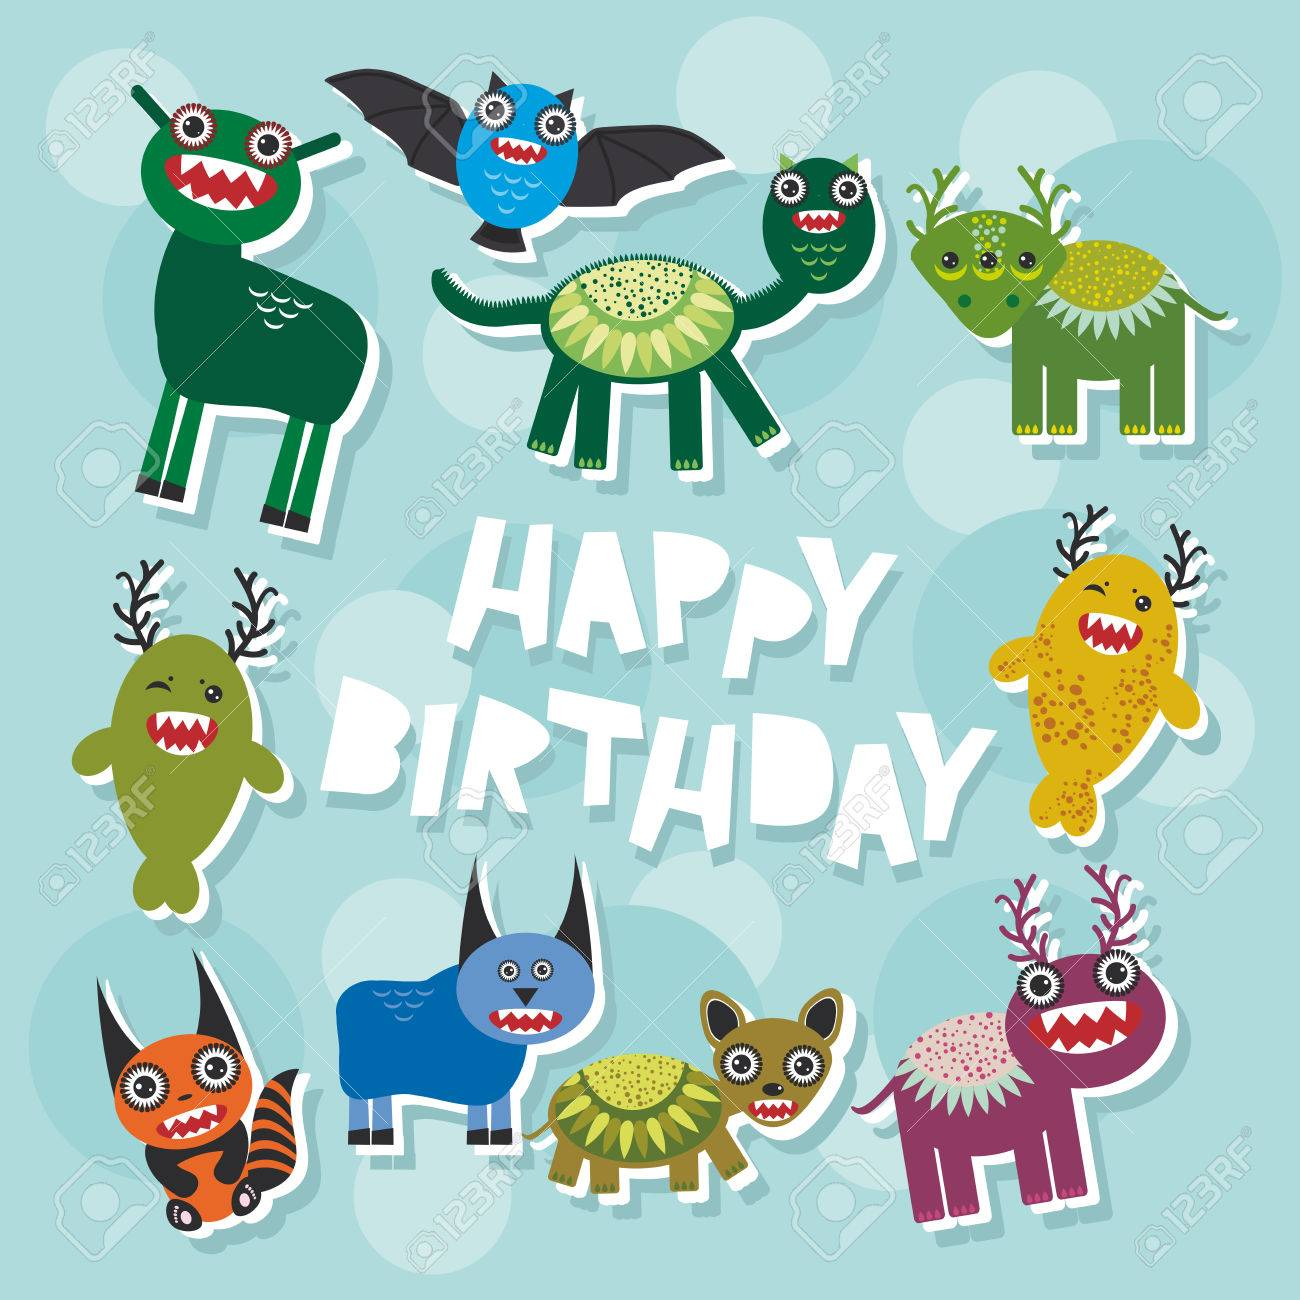 Happy Birthday Funny Monsters Party Card Design Vector Illustration Stock